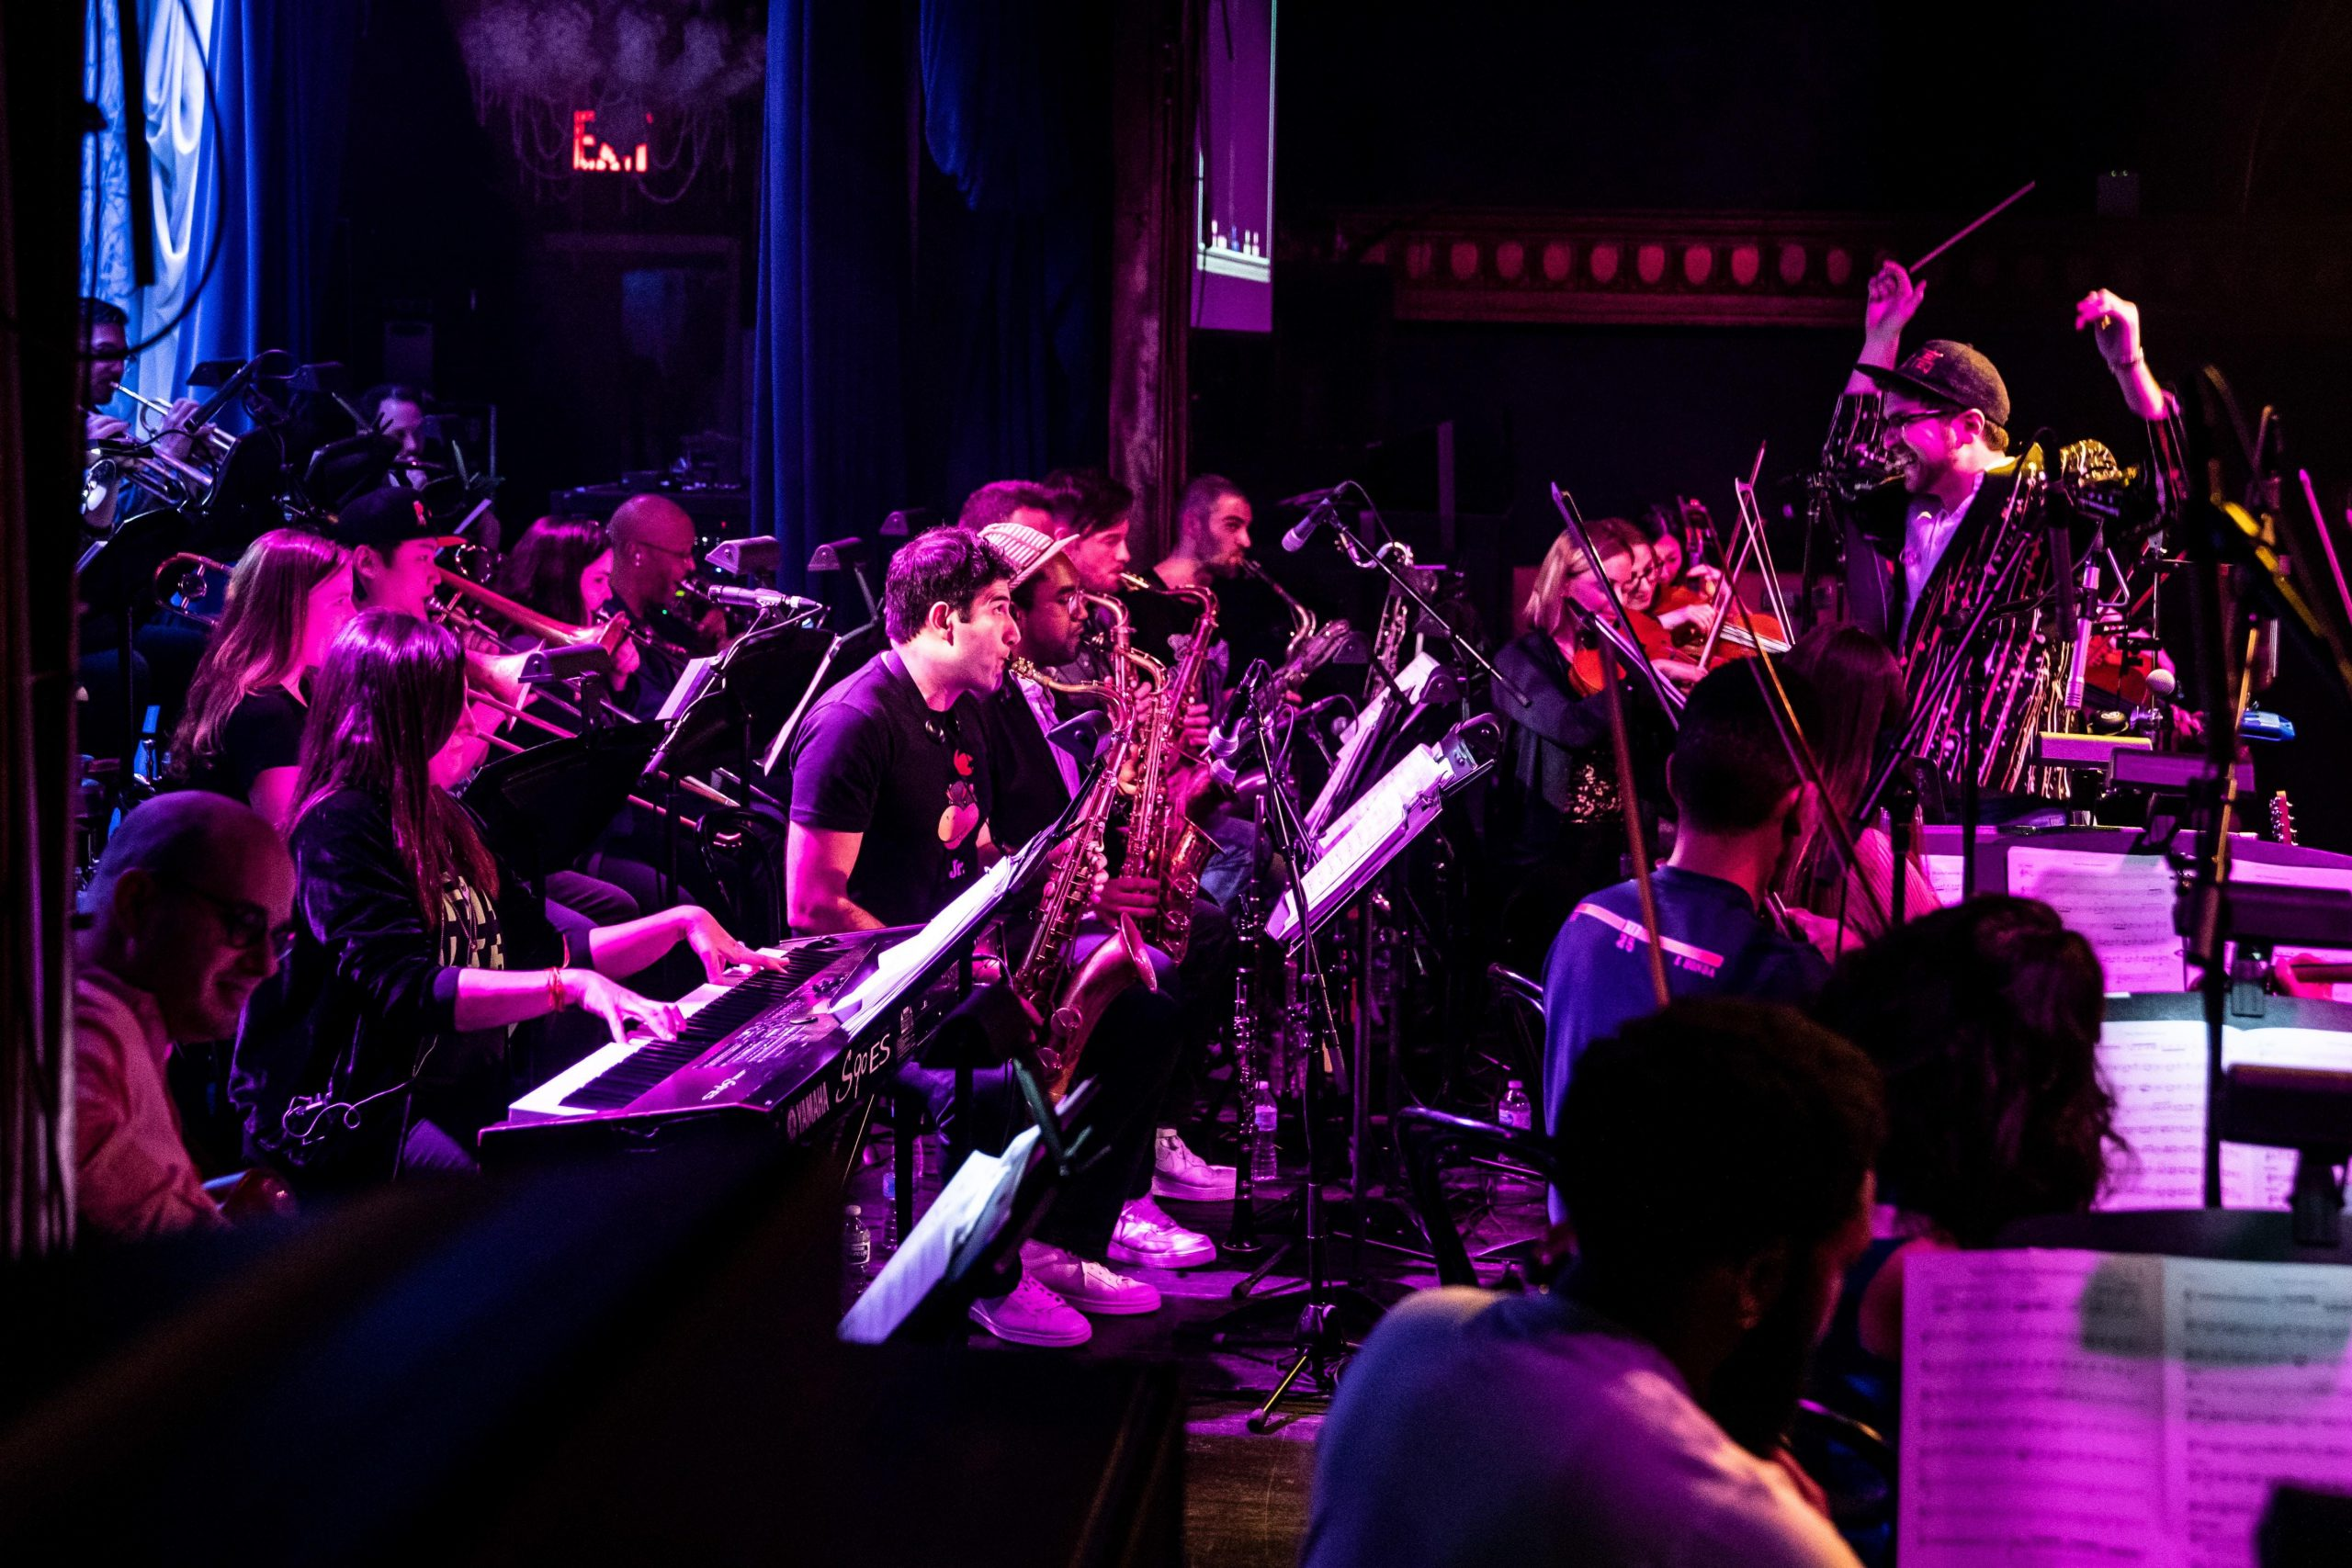 FEATURE: The 8-Bit Big Band's Inspiration From Video Game Music – JazzTimes